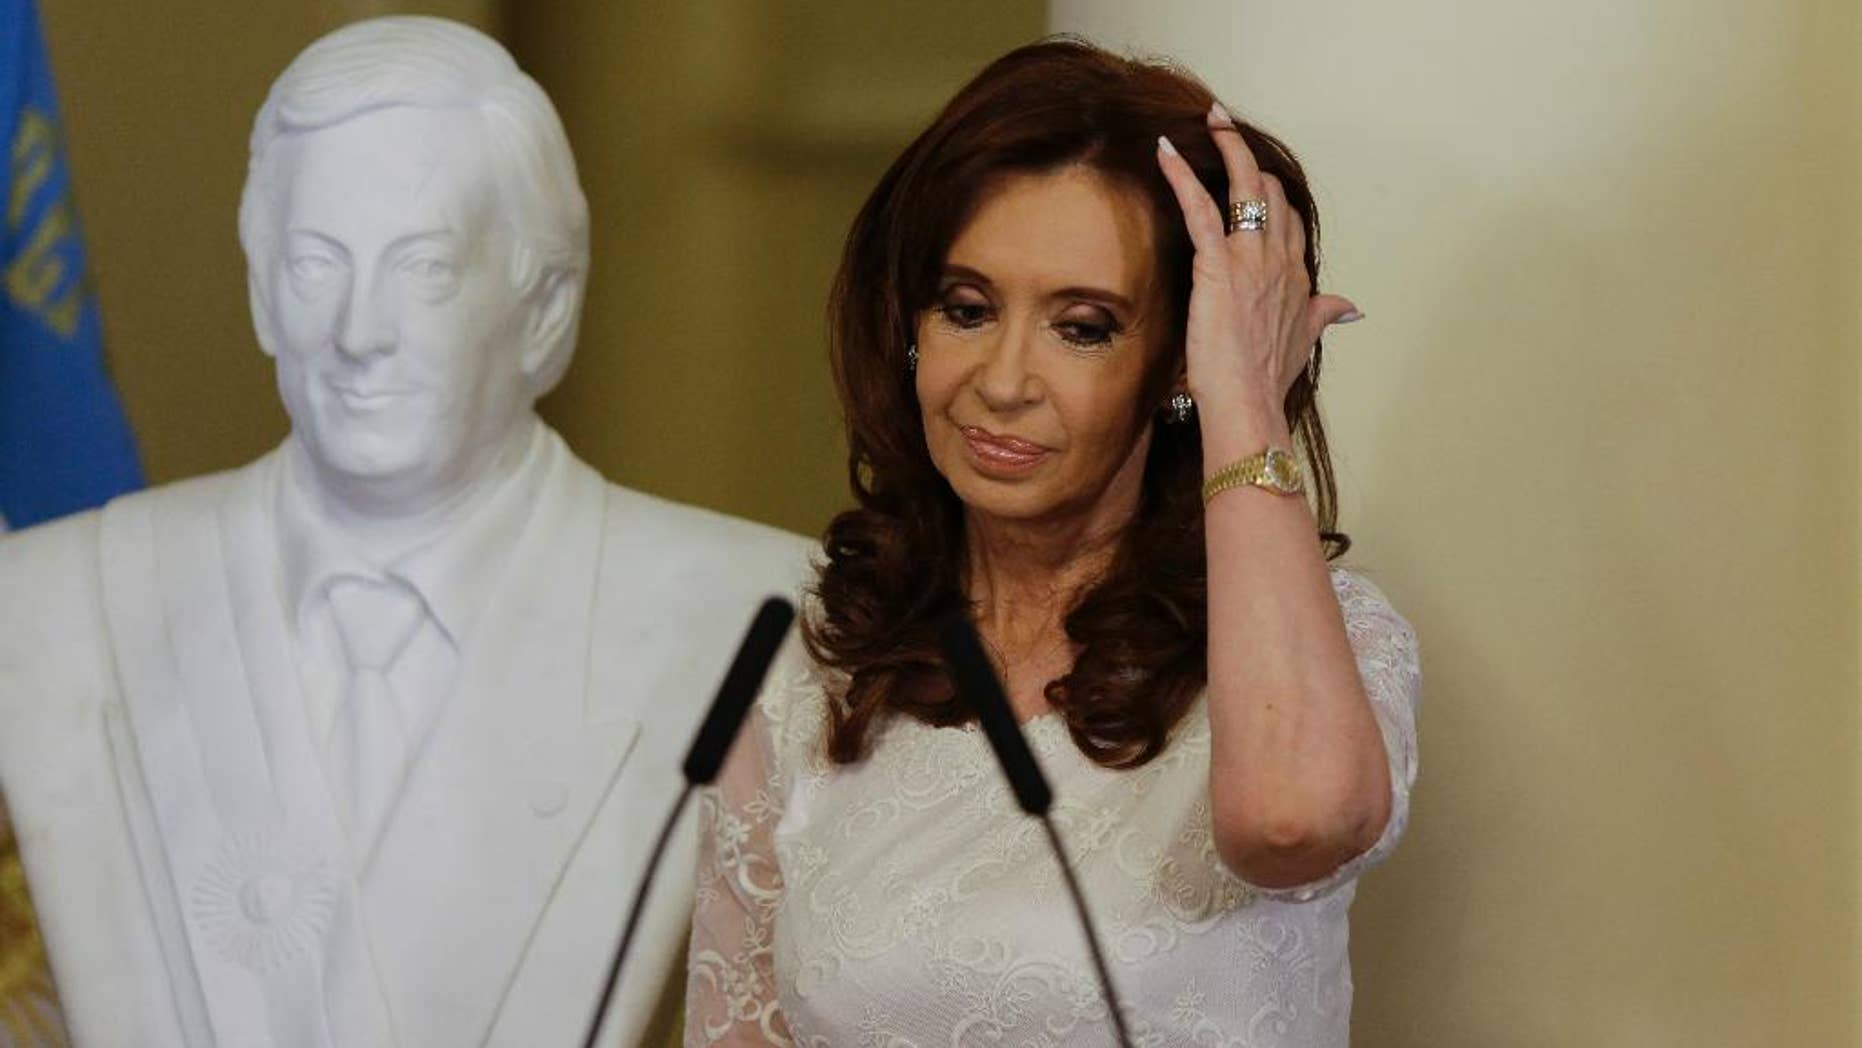 FILE - In this Dec. 9, 2015 file photo, Argentina's President Cristina Fernandez pushes her hair back after unveiling a bust of her late husband, and former president, Nestor Kirchner, at the presidential palace in Buenos Aires, Argentina. An Argentine judge indicted Fernandez on Tuesday, Dec. 27, 2016, in a corruption case involving public works. (AP Photo/Ricardo Mazalan, File)